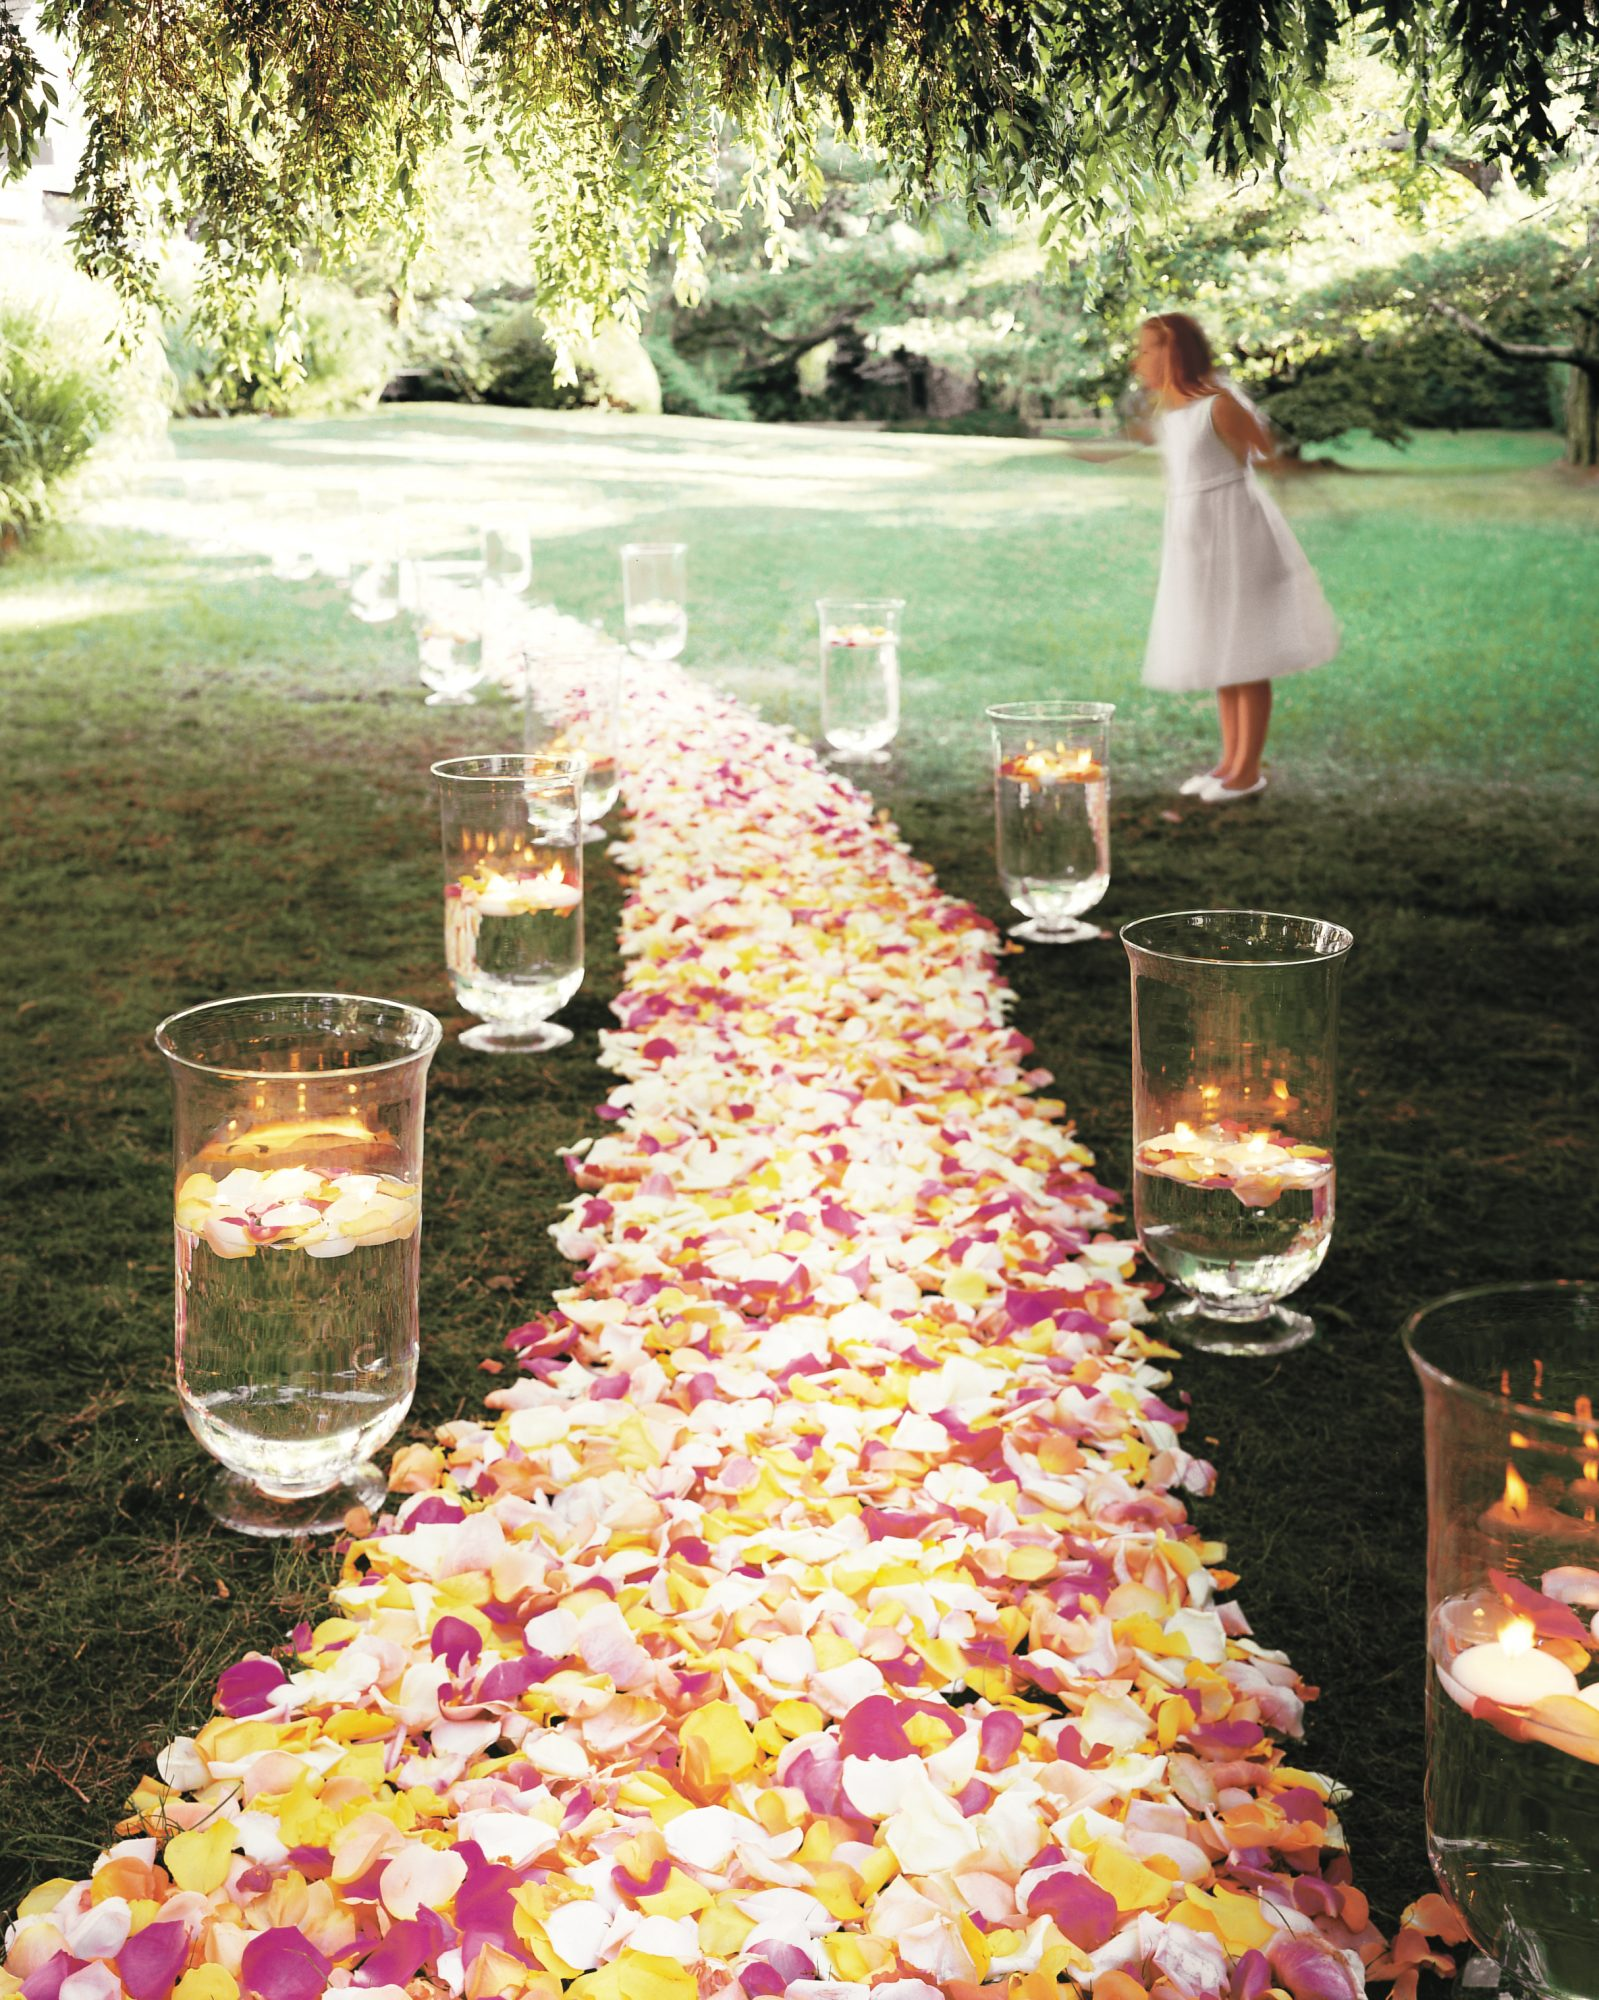 path-flower-petals-votive-candle-mml922j4.jpg